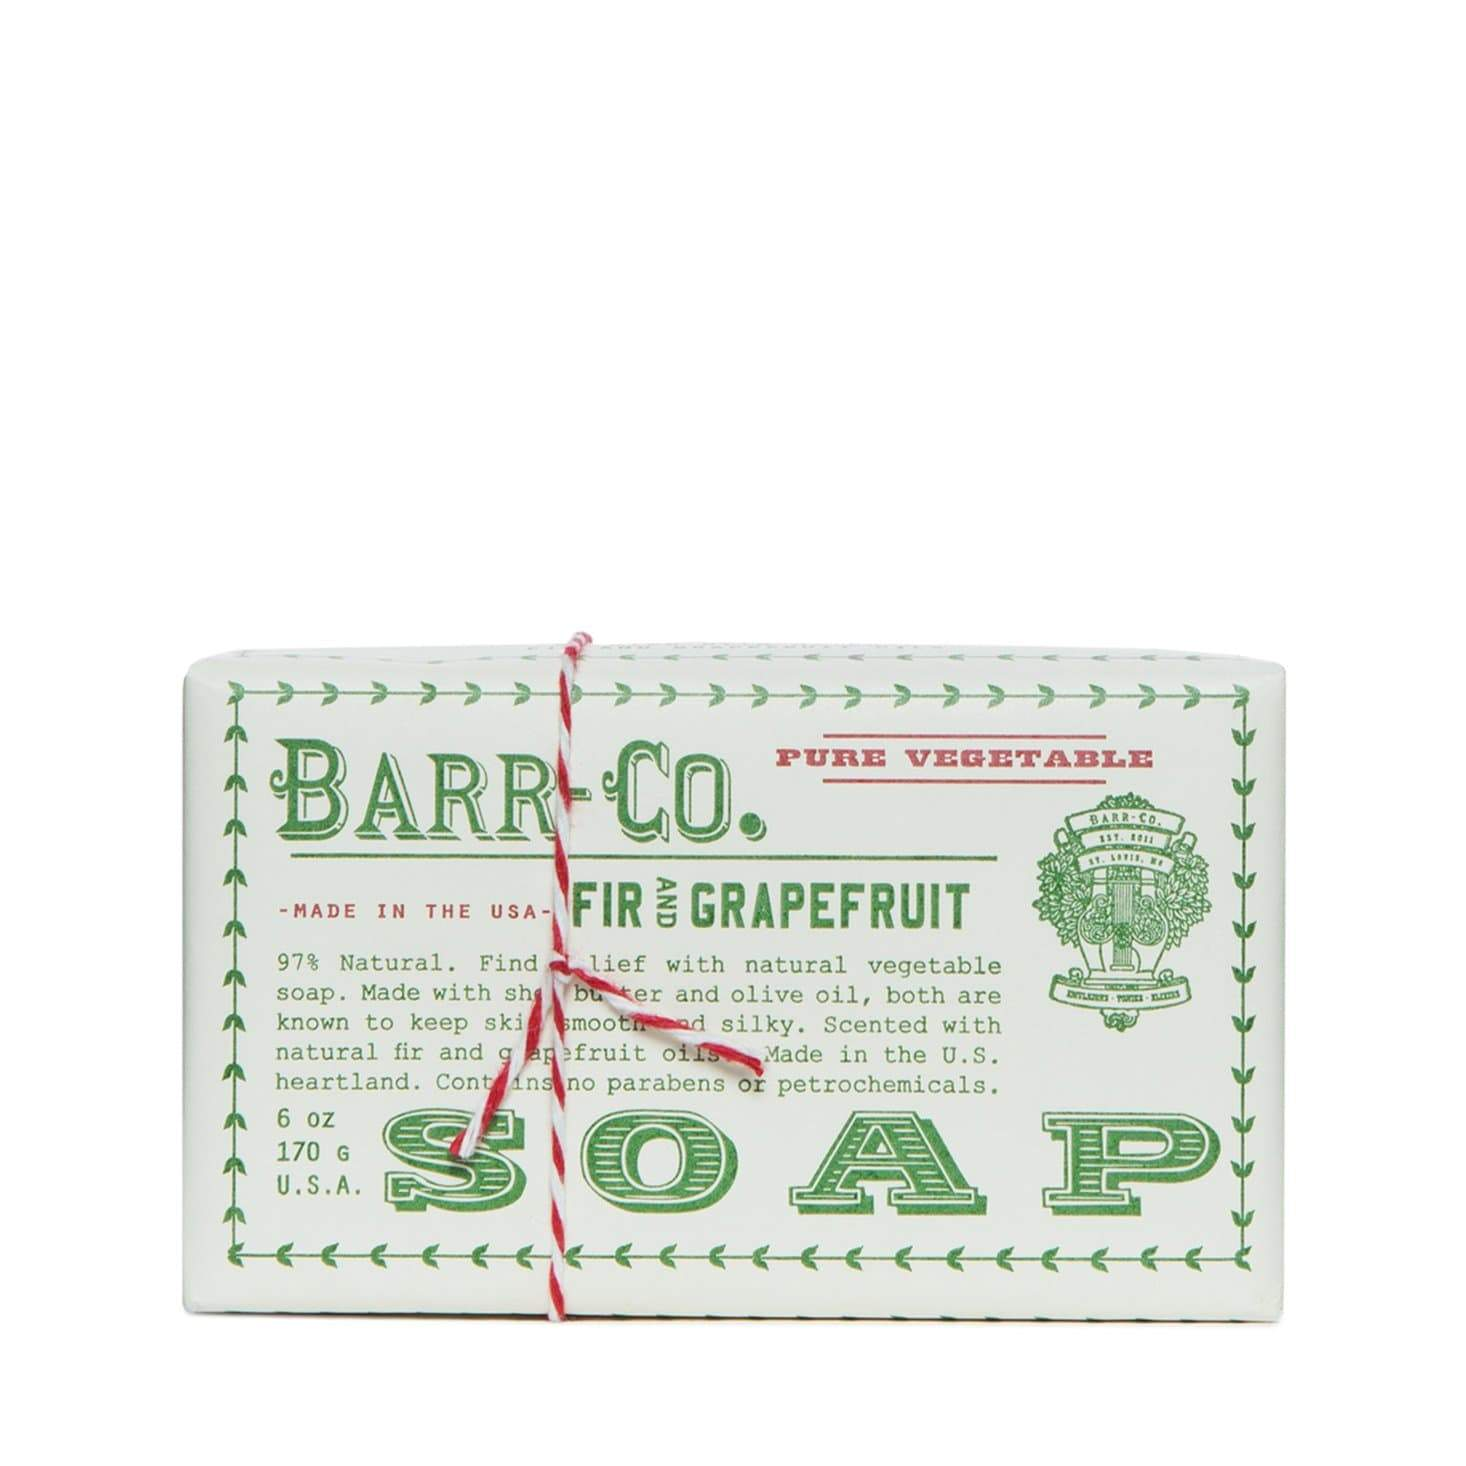 Barr-Co Fir & Grapefruit Soap